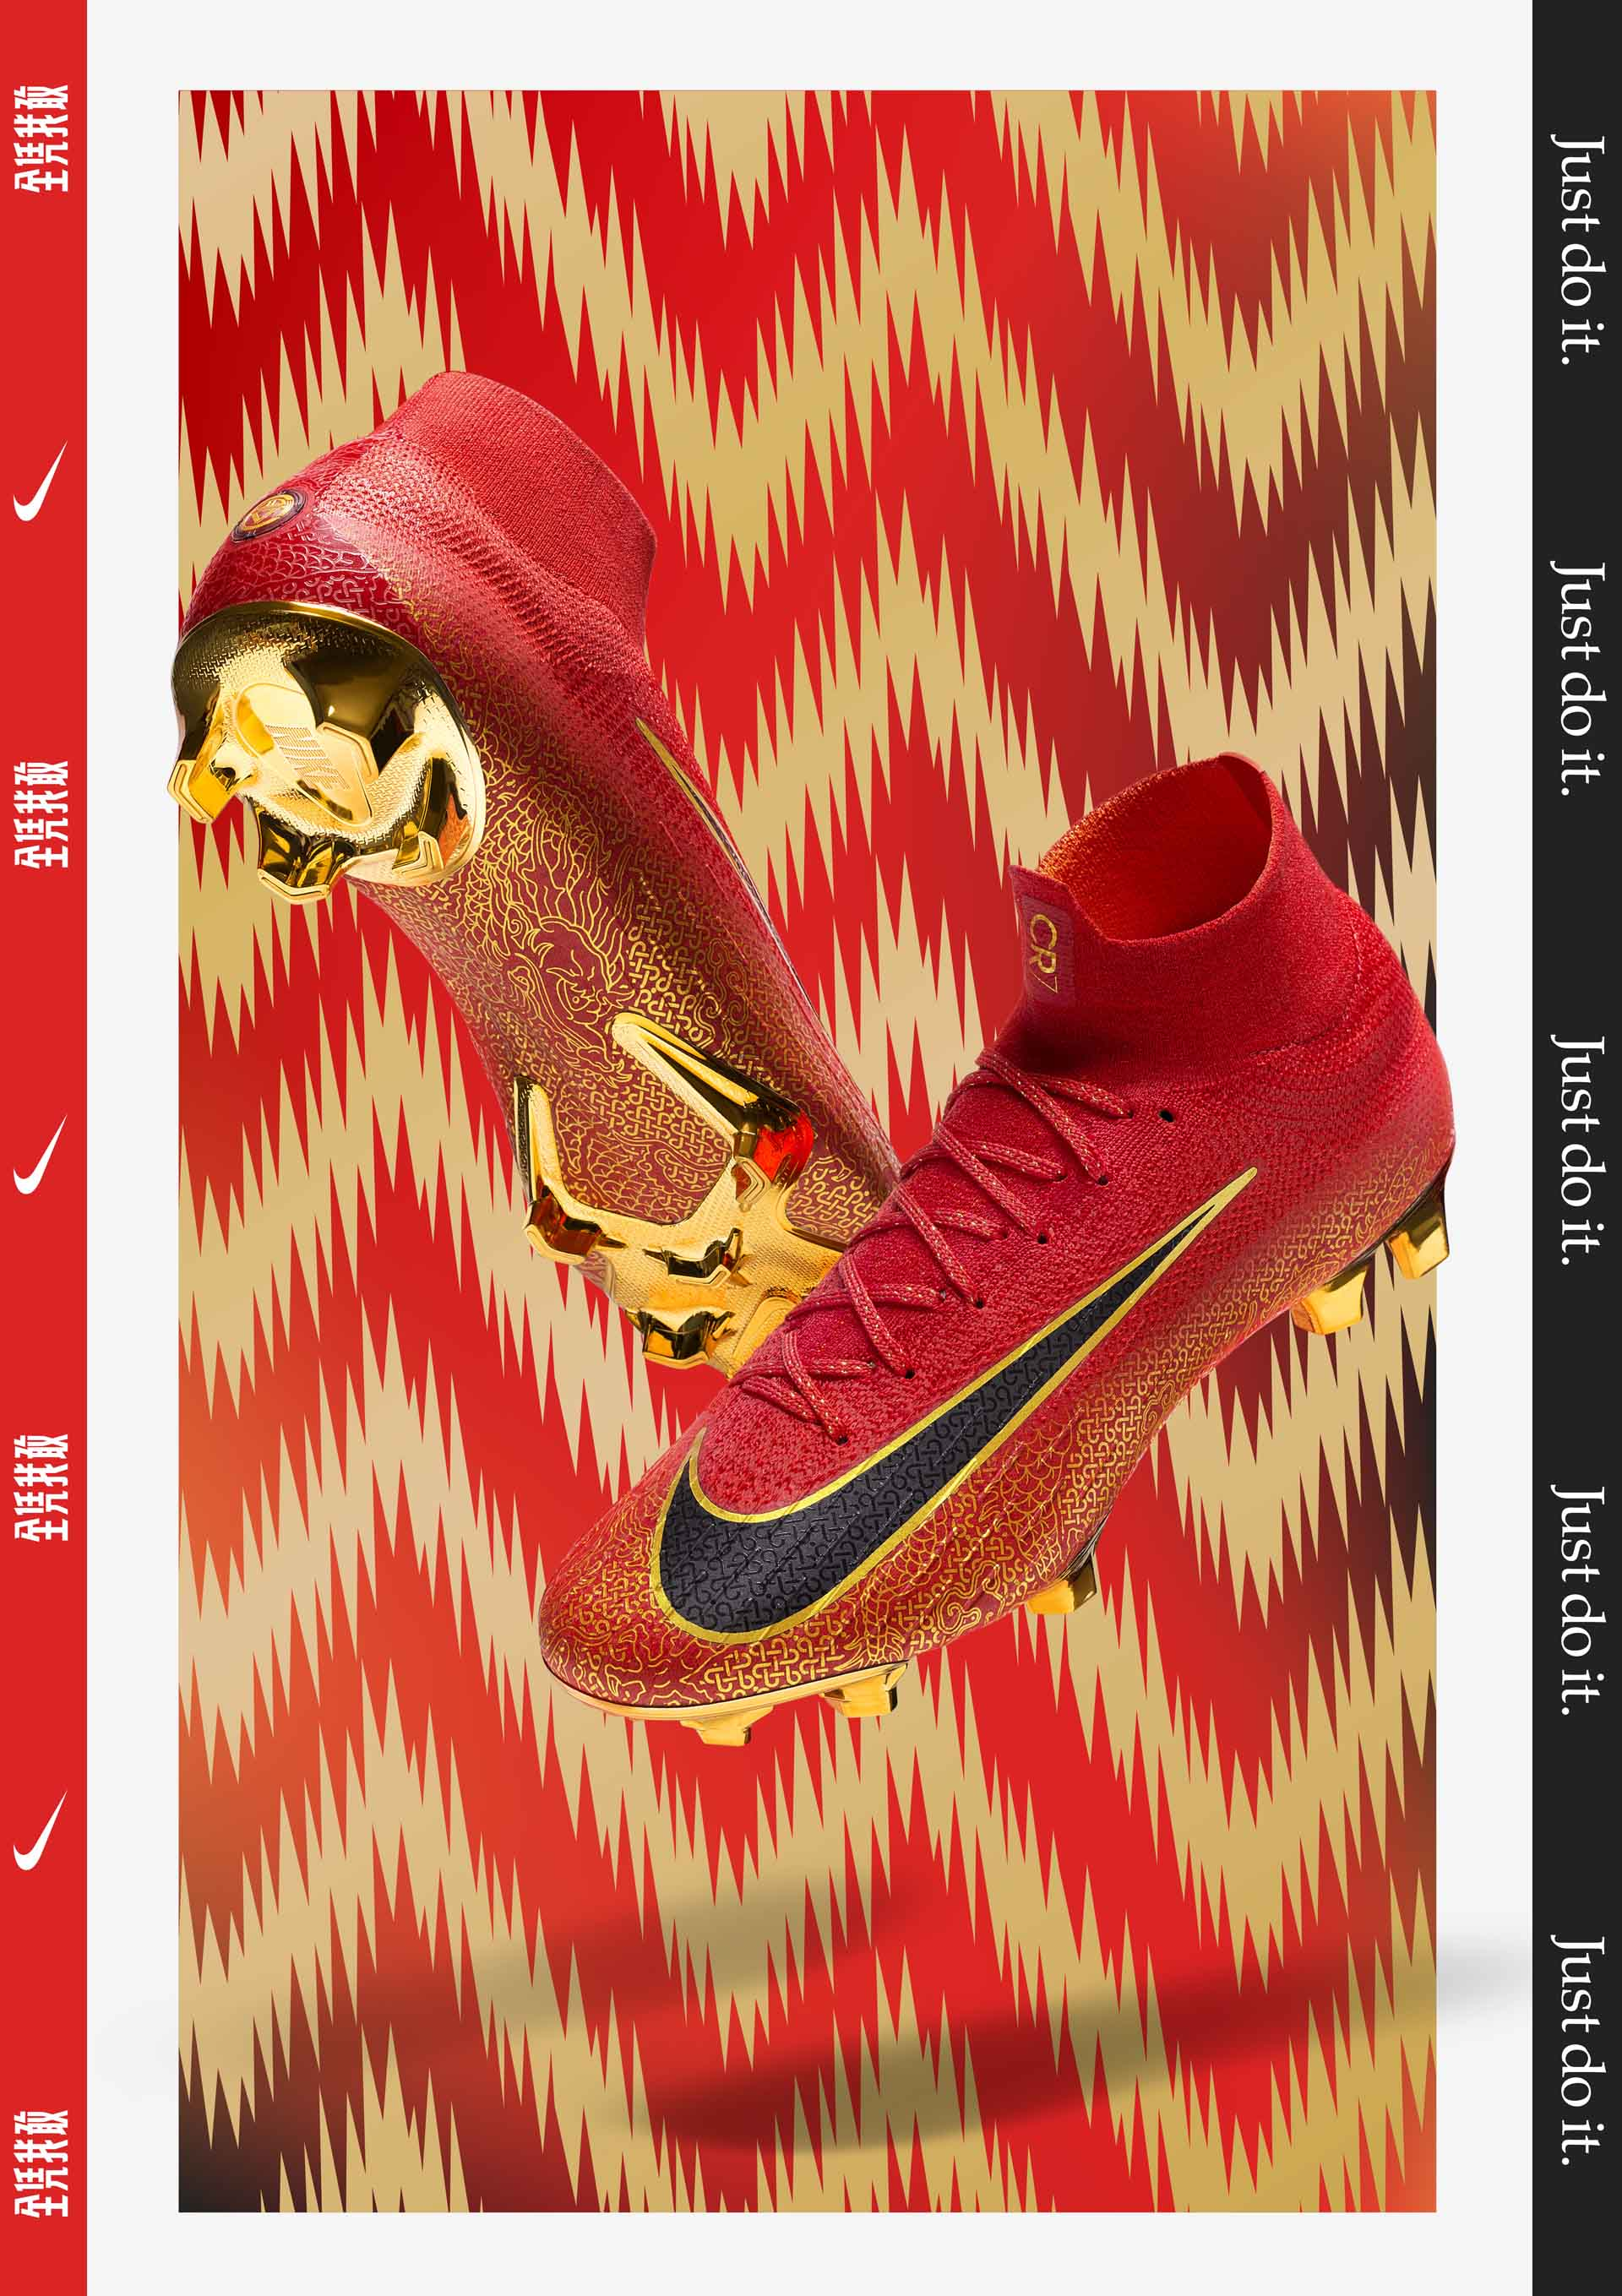 eficiencia Empuje Énfasis  Nike Launch China Exclusive CR7 Collection - SoccerBible